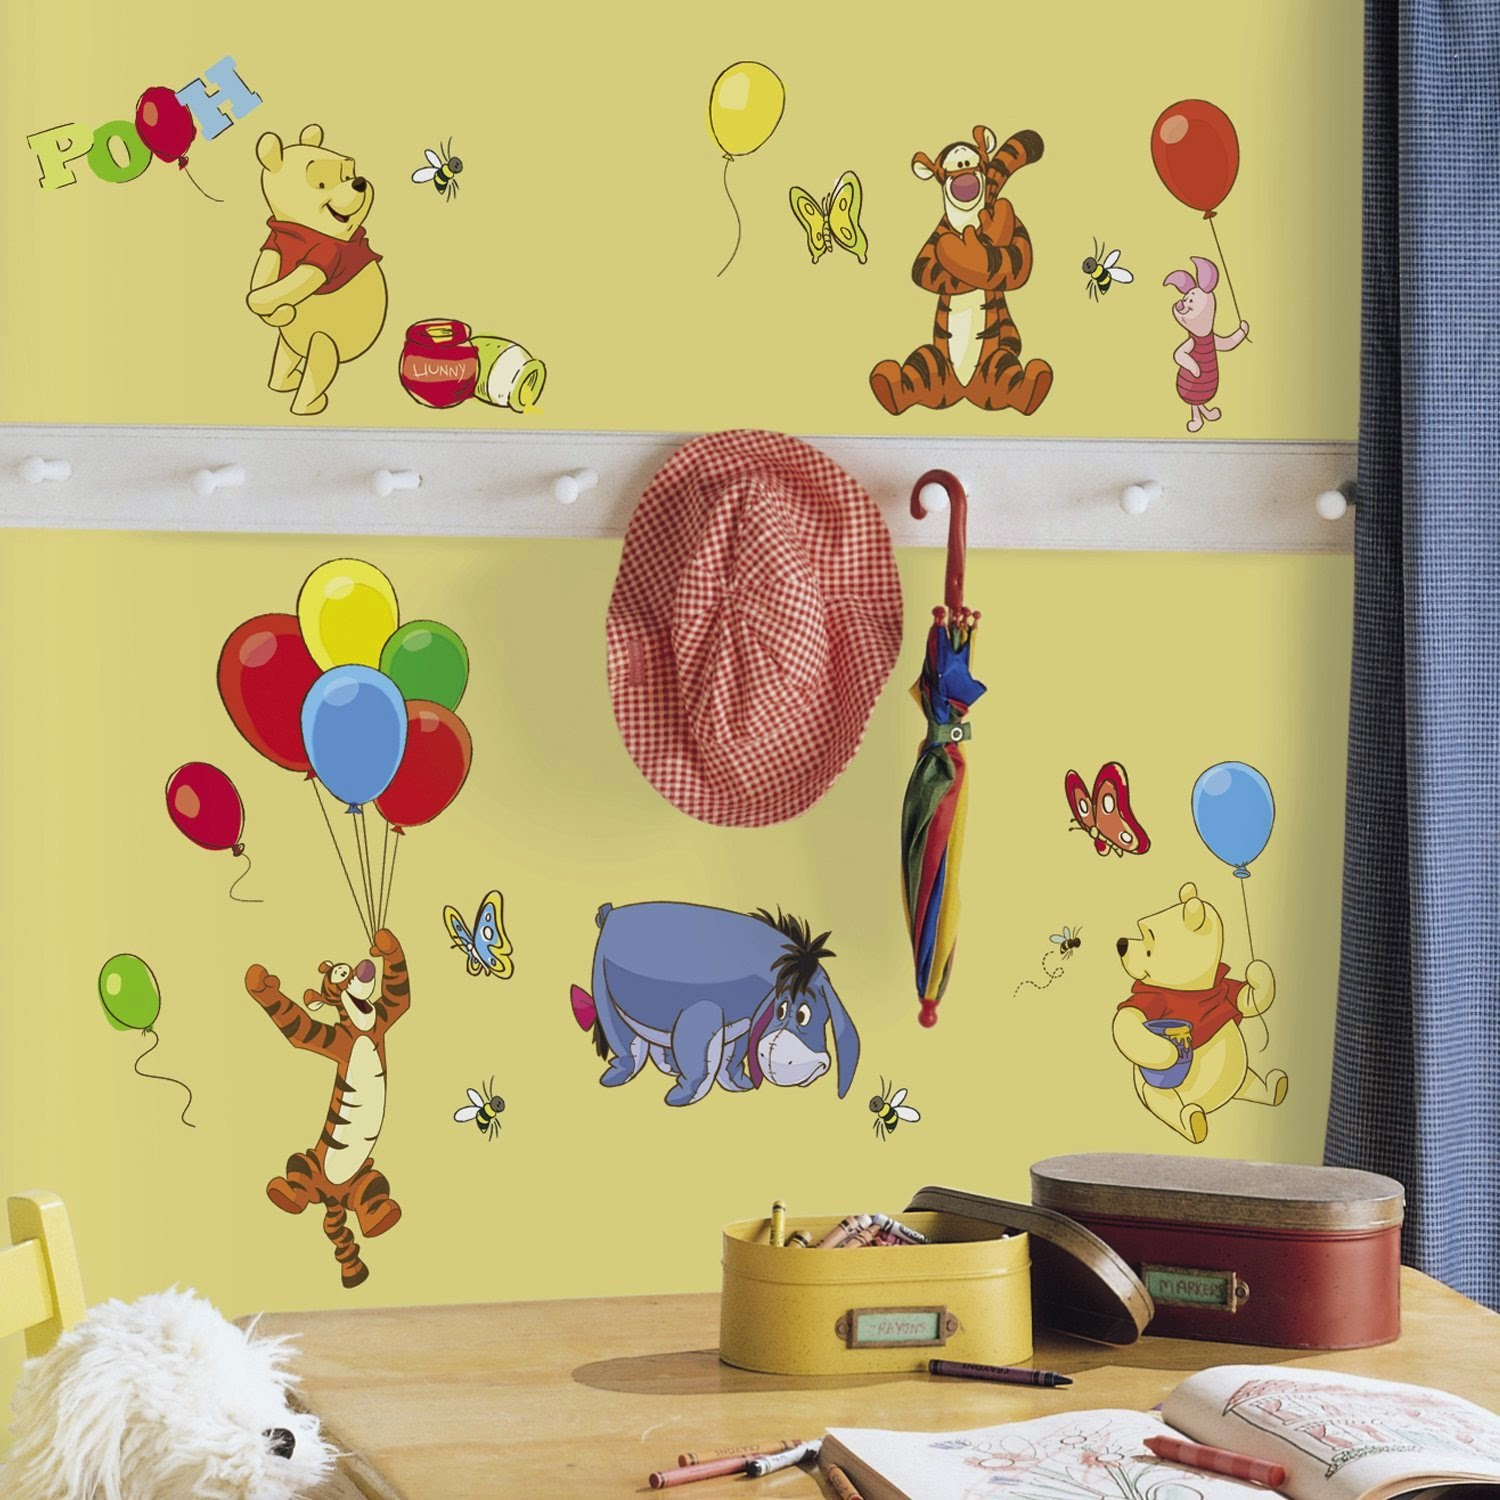 Roommates Rmk1498Scs Pooh And Friends Peel and Stick Wall Decal | Pooh